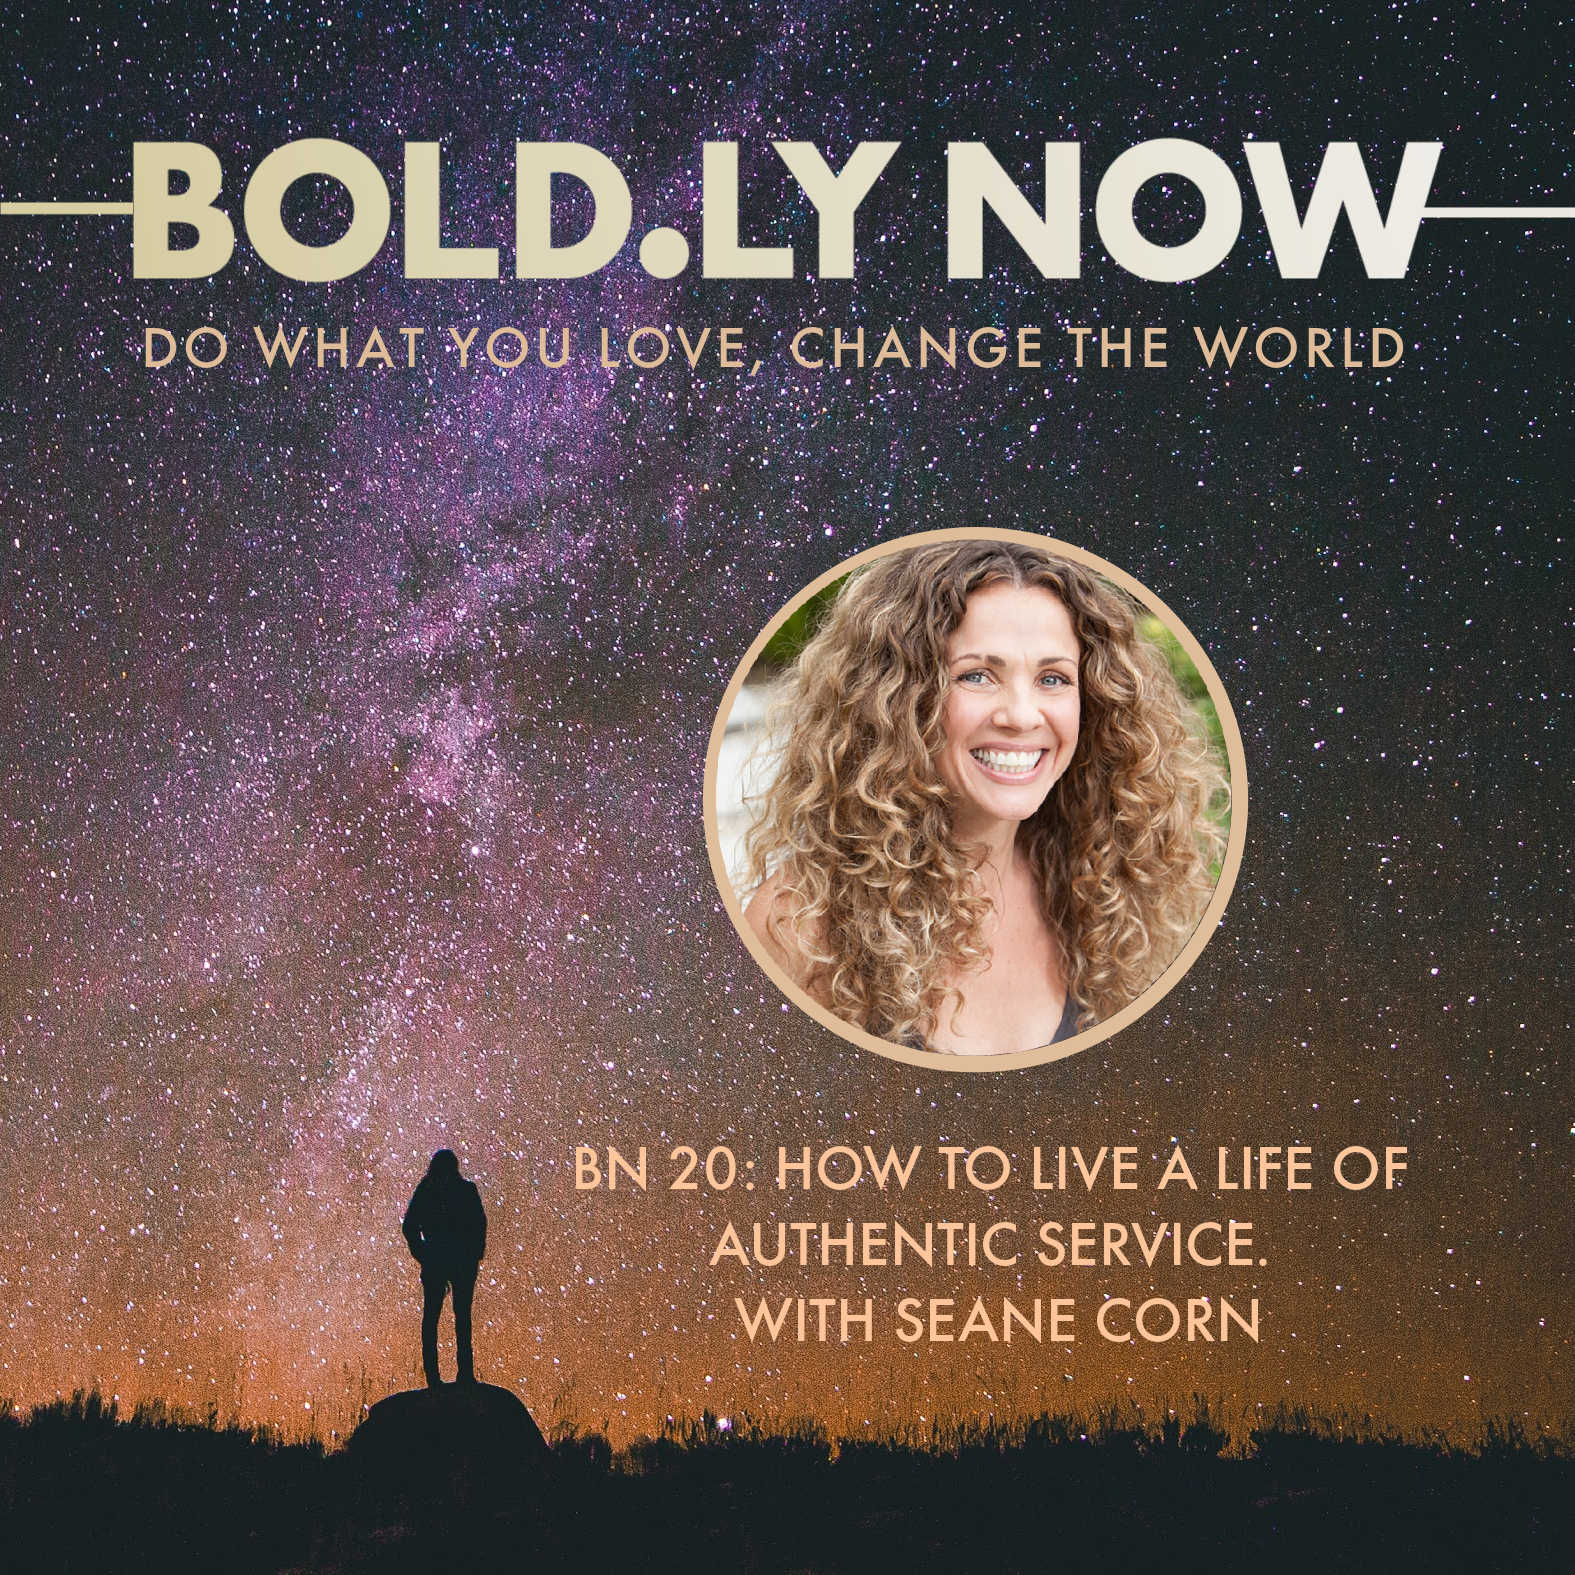 Artwork for podcast The Boldly Now Show